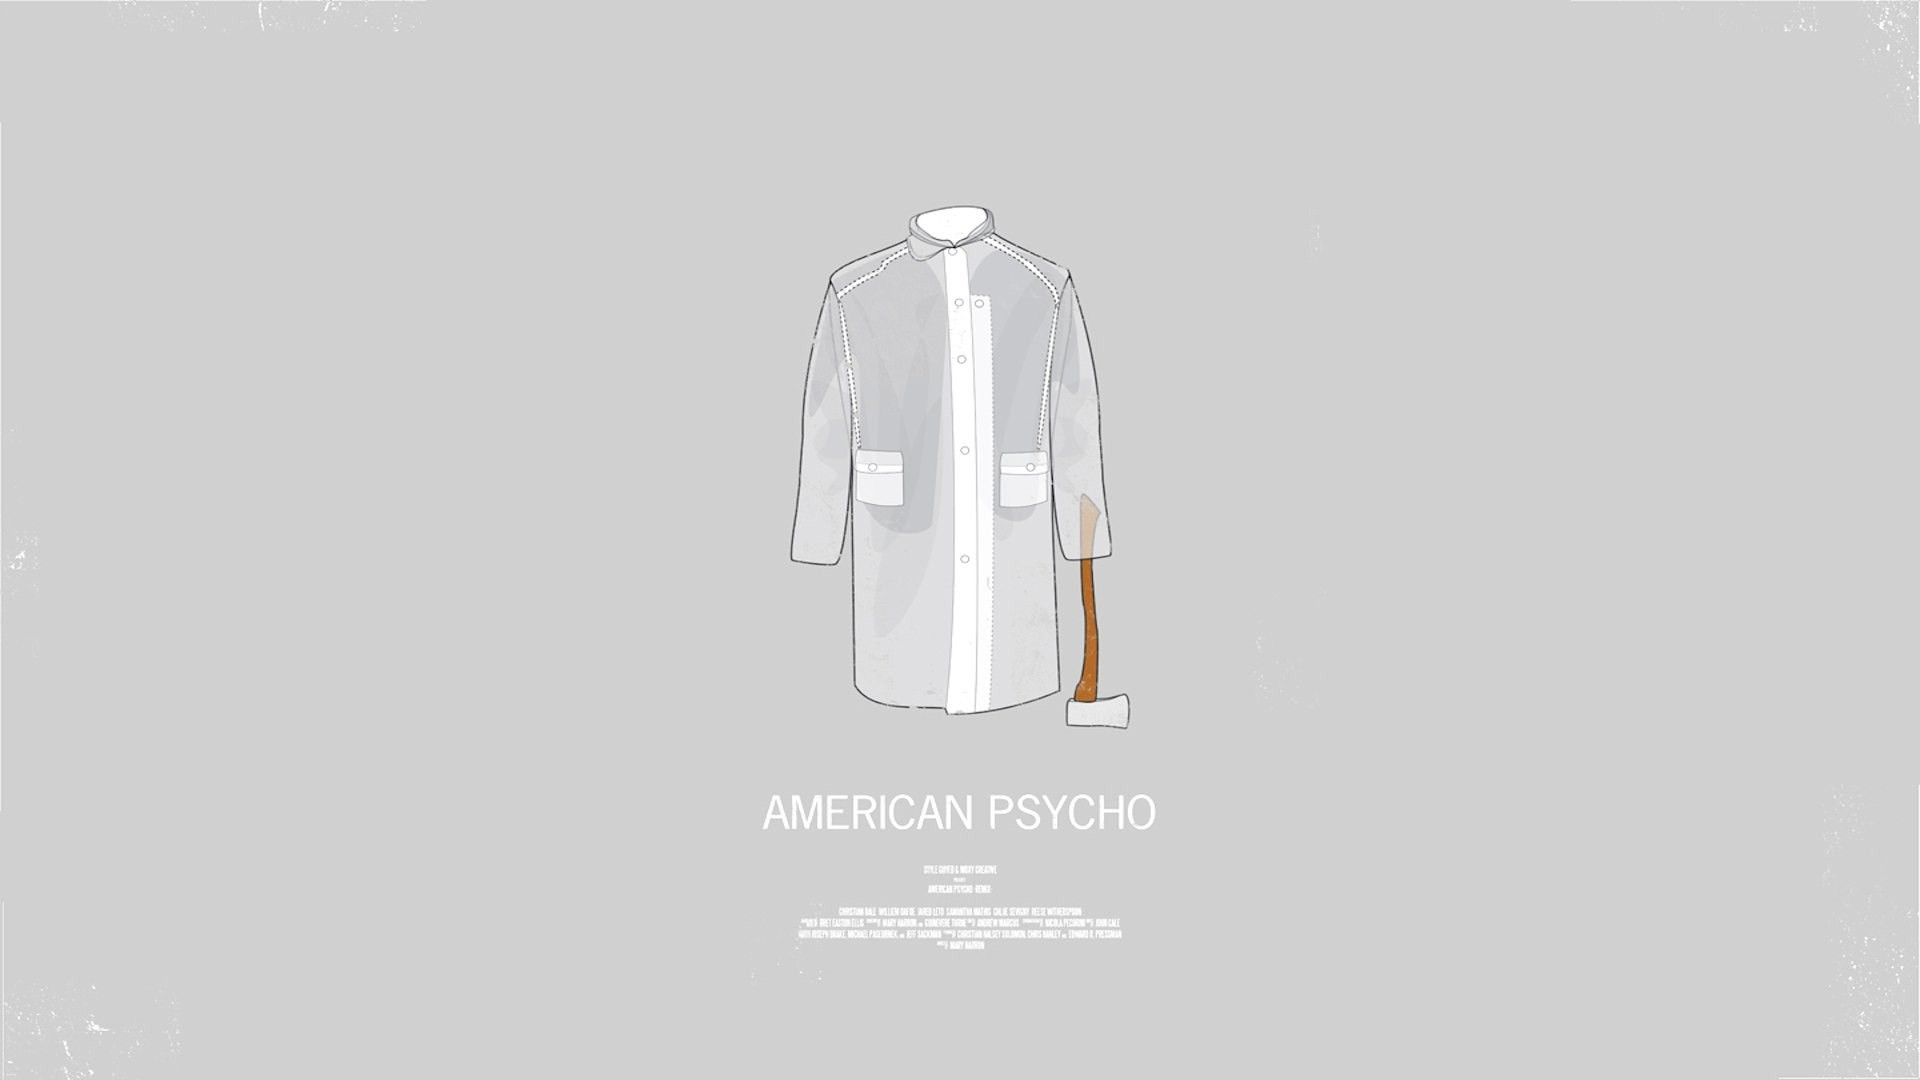 American Psycho Wallpaper (74+ images)